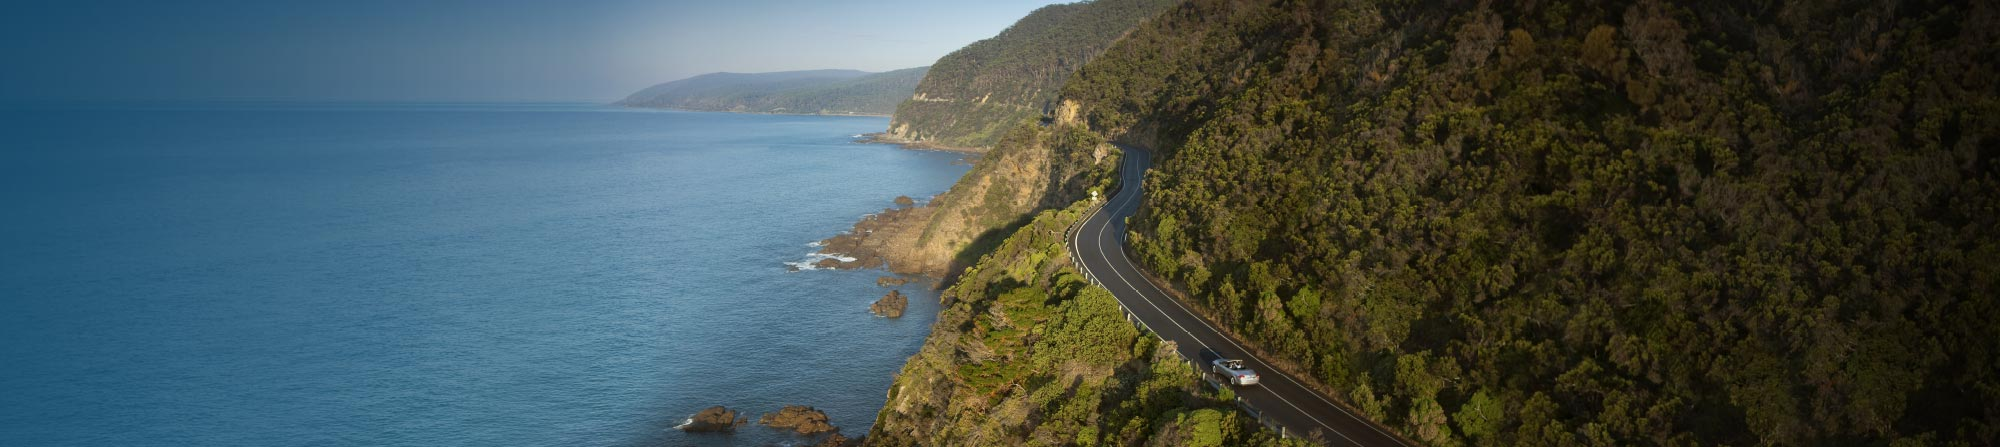 Aerial view of the great ocean road winding along, cut into the side of cliffs that drop into the sea